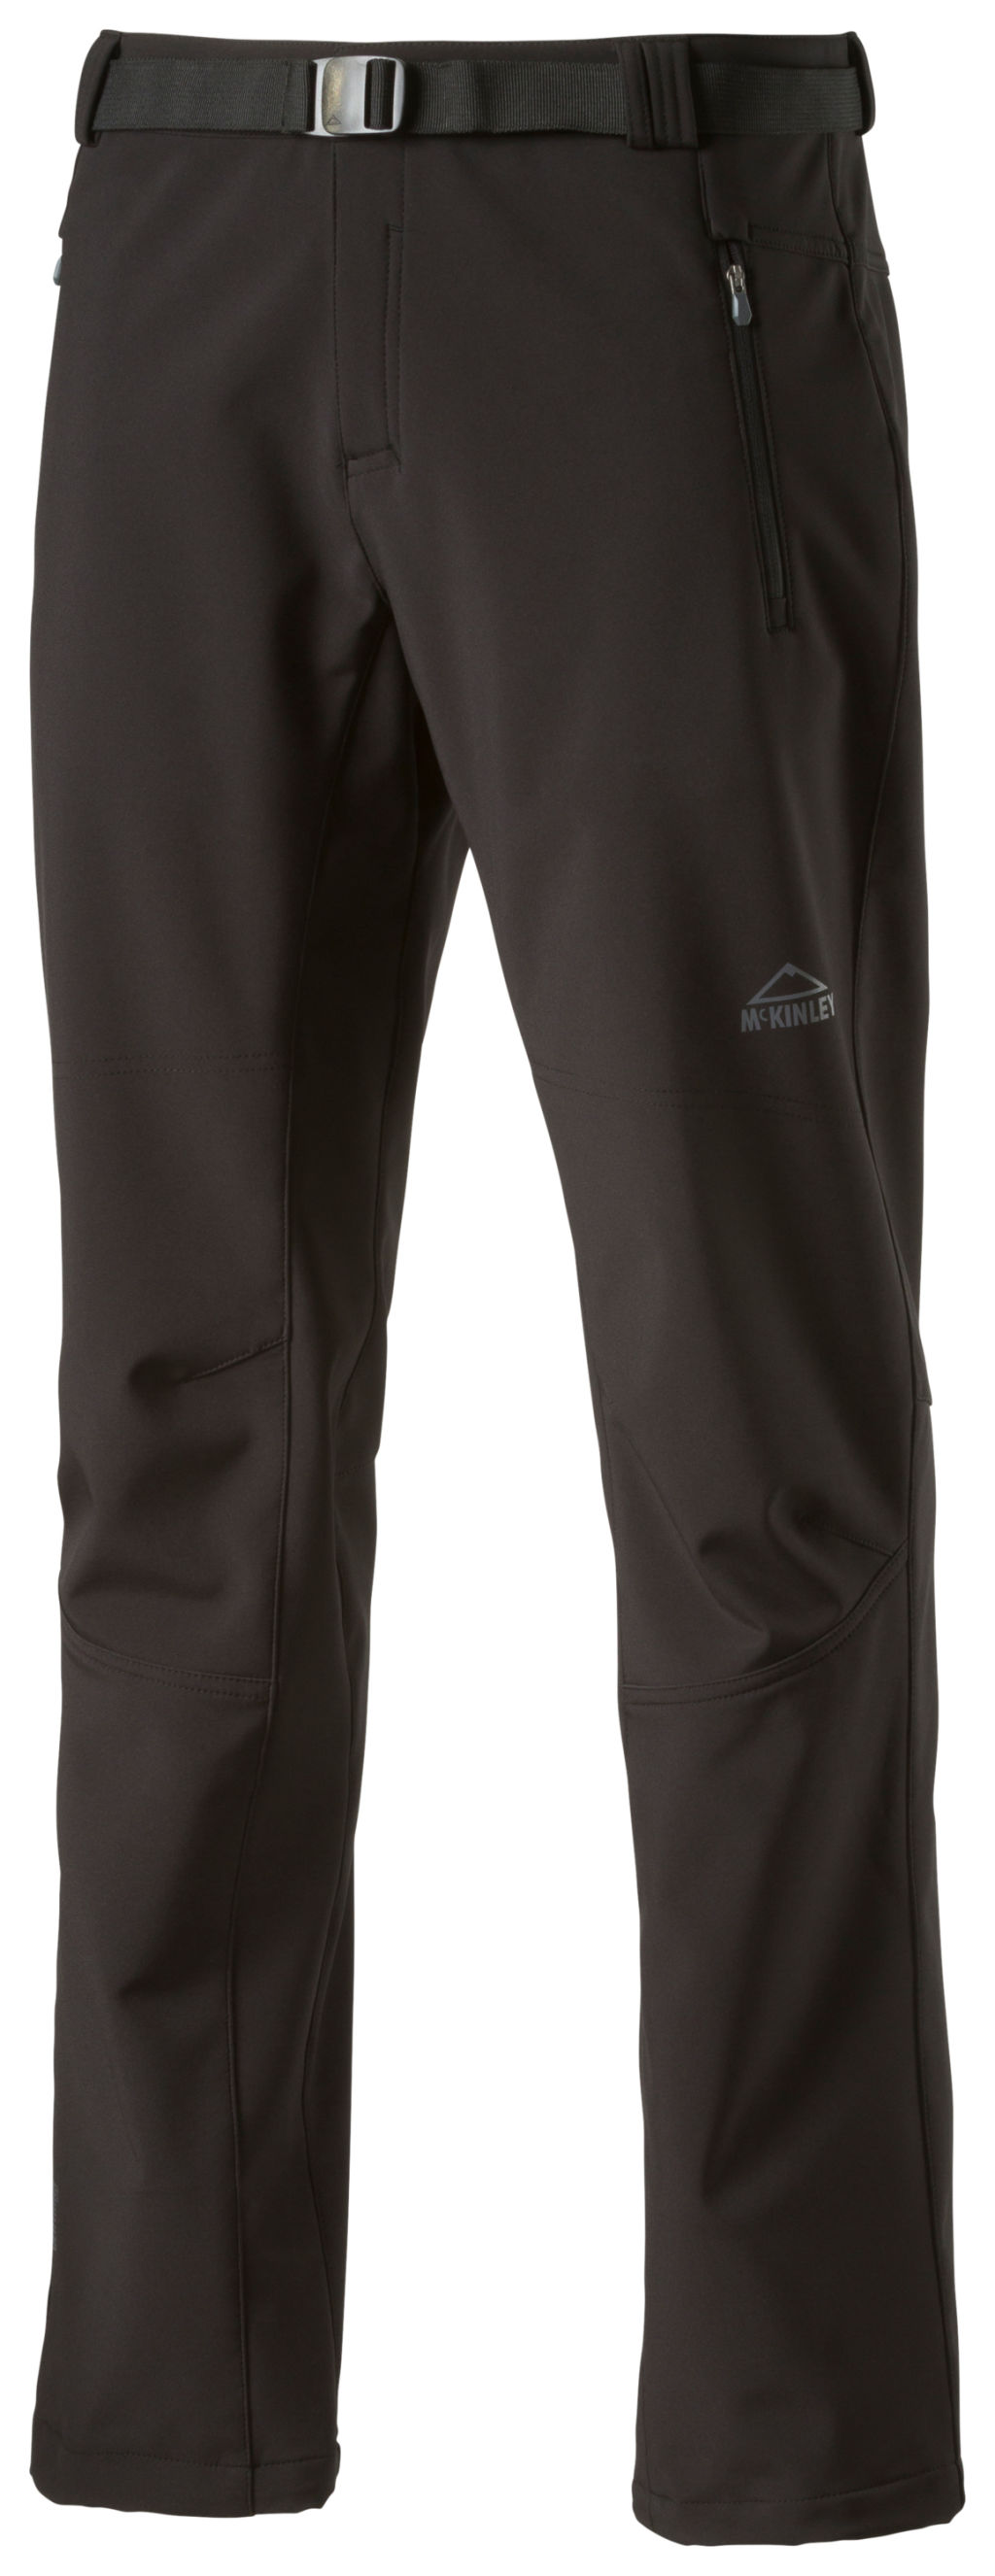 McKINLEY Shalda Softshell Pants Short M